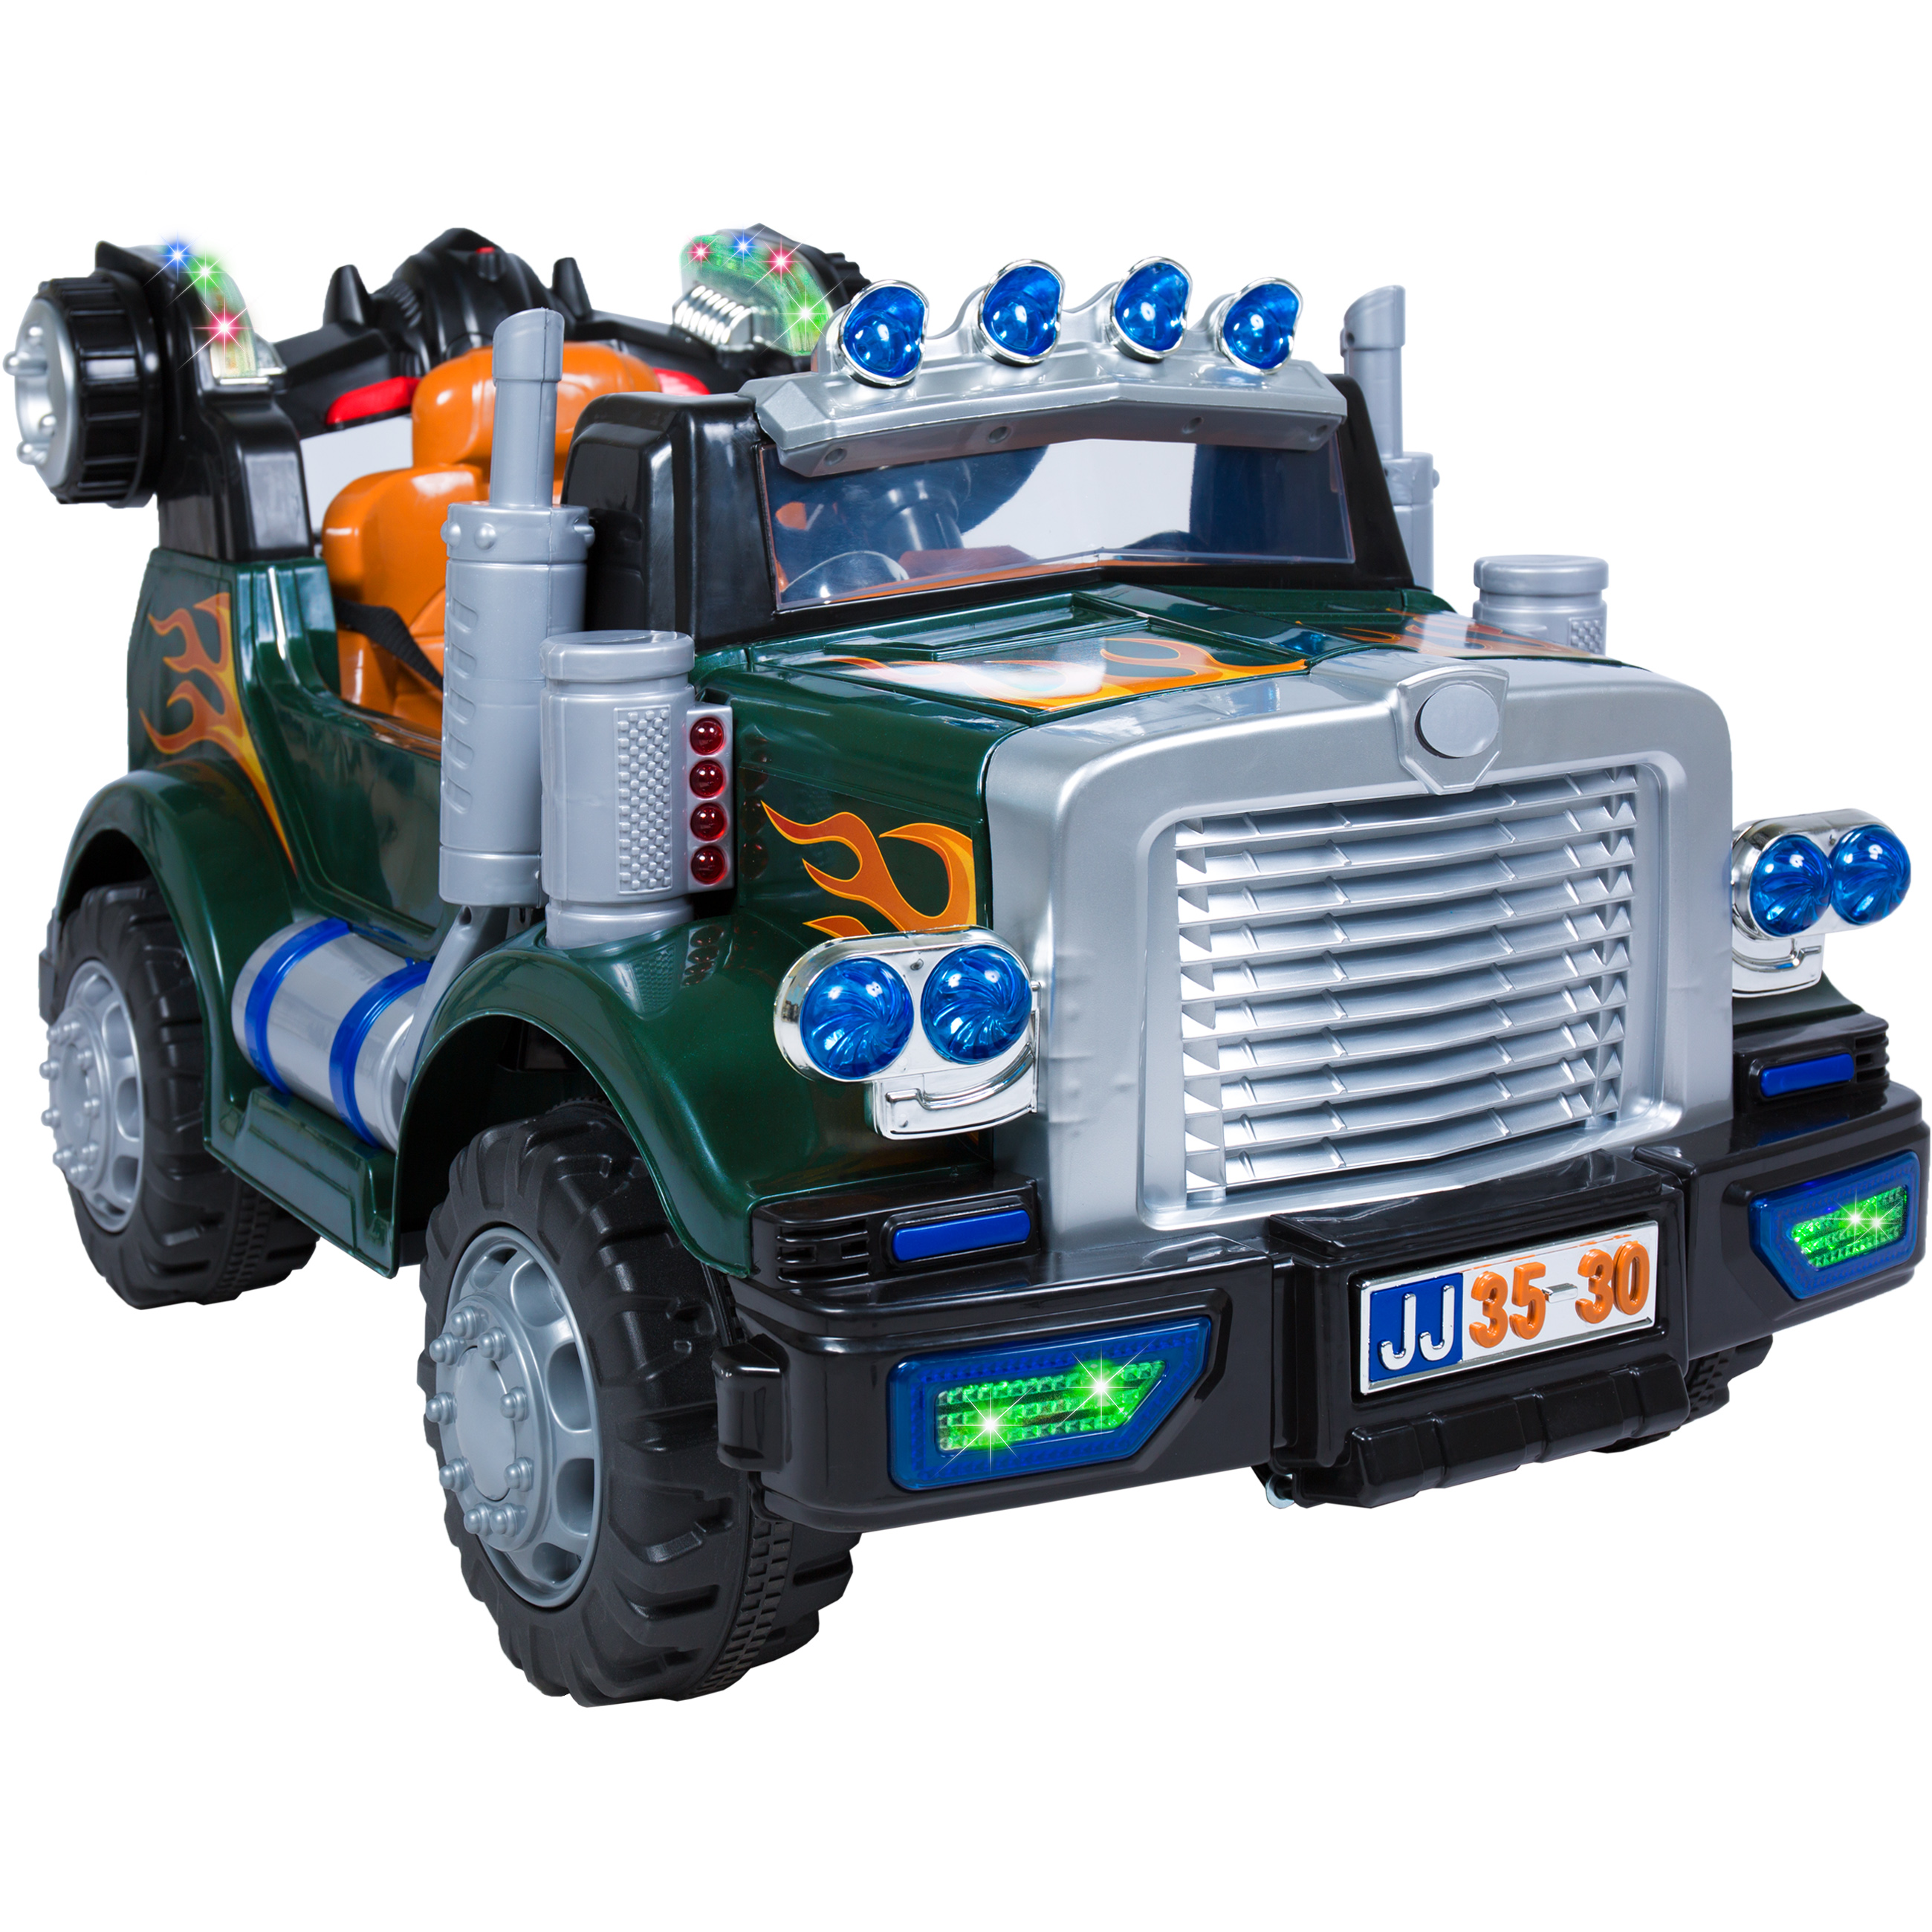 Best Choice Products 12V Ride On Semi Truck Kids Remote Control Big Rig Electric Batery Power w/ Radio & MP3, Lights